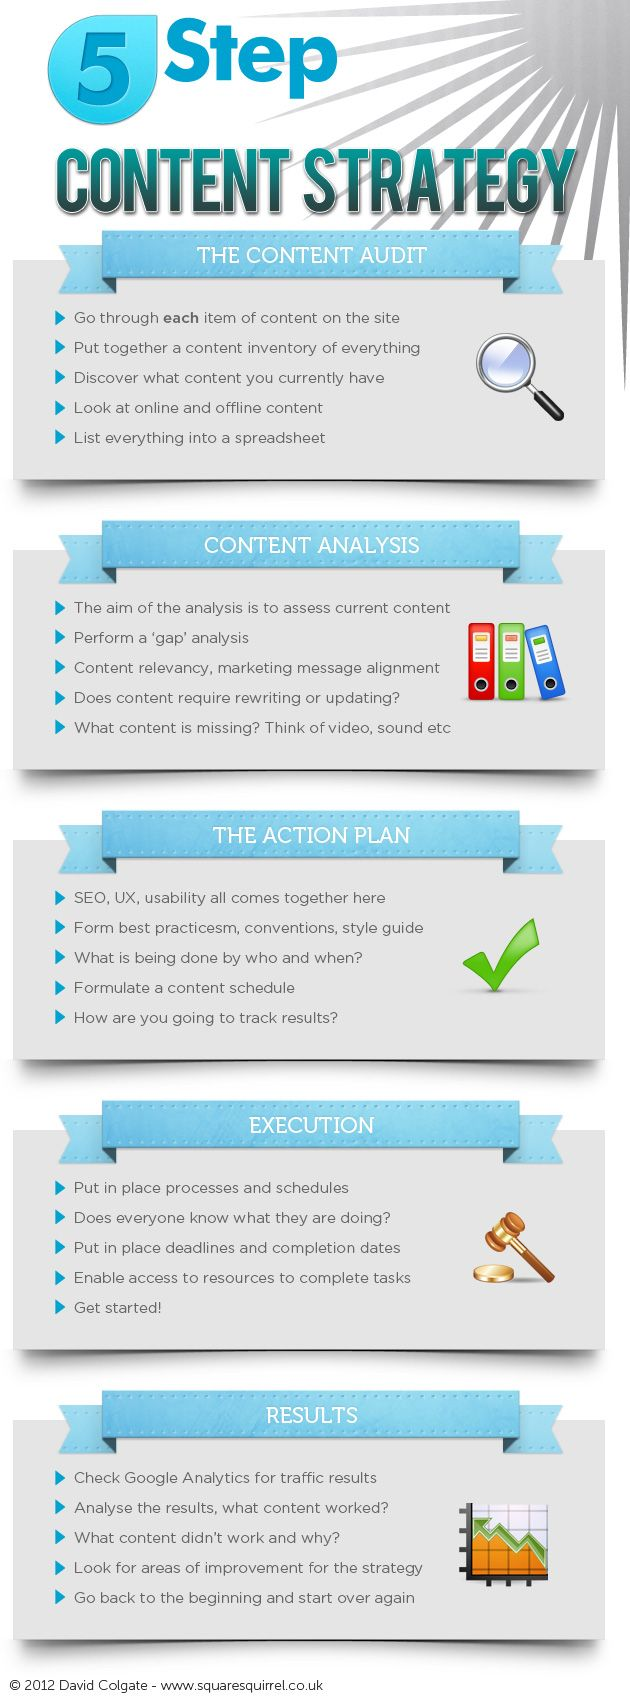 https://social-media-strategy-template.blogspot.com/2016/05/conceptualising-content-strategy.html 5 Step content strategy from Square Squirrel